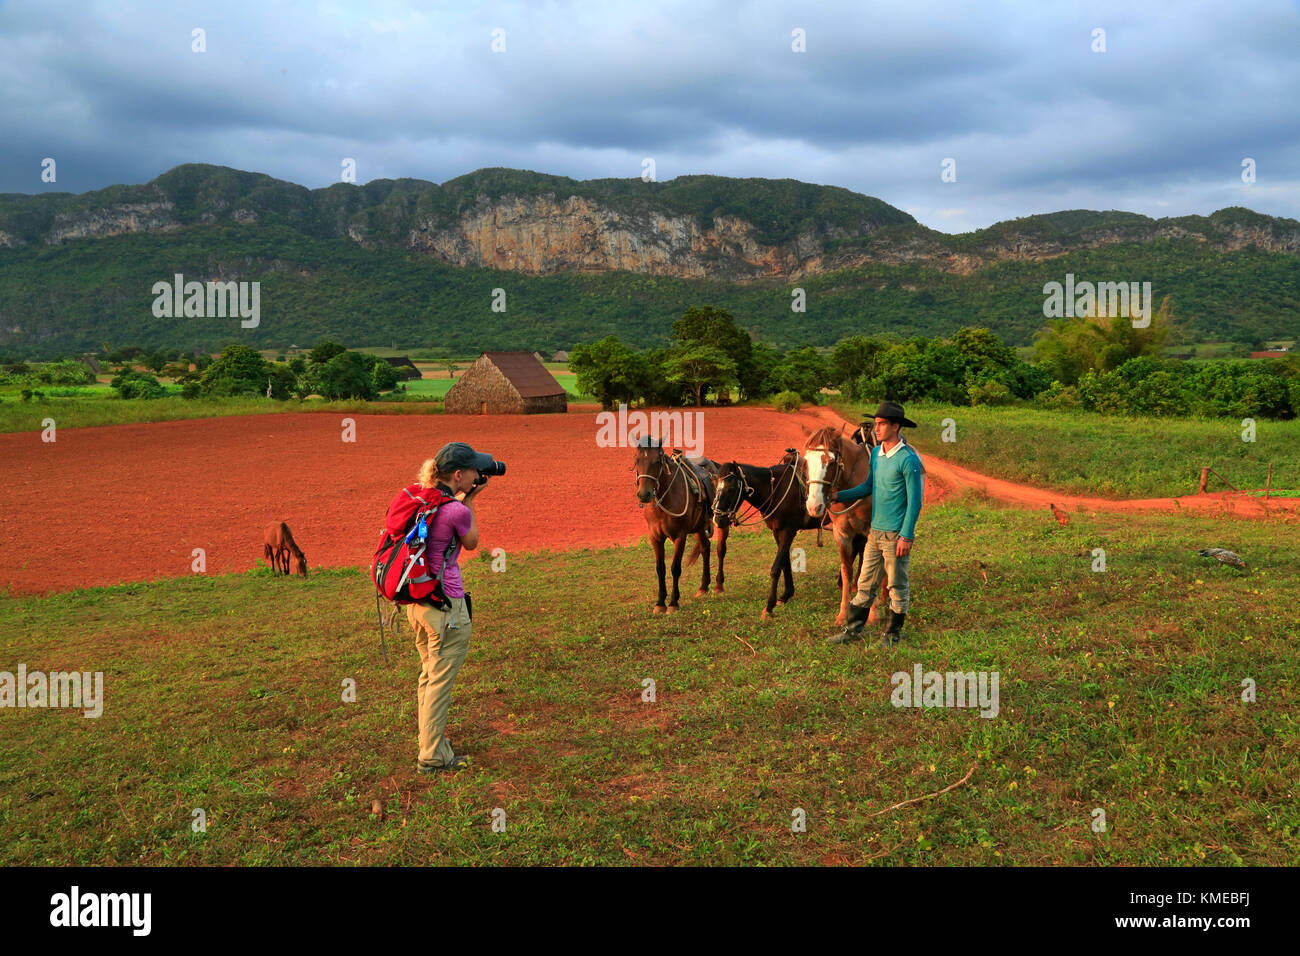 American woman photographing her guide and horses during riding tour through tobacco fincas plantations in Vinales - Stock Image